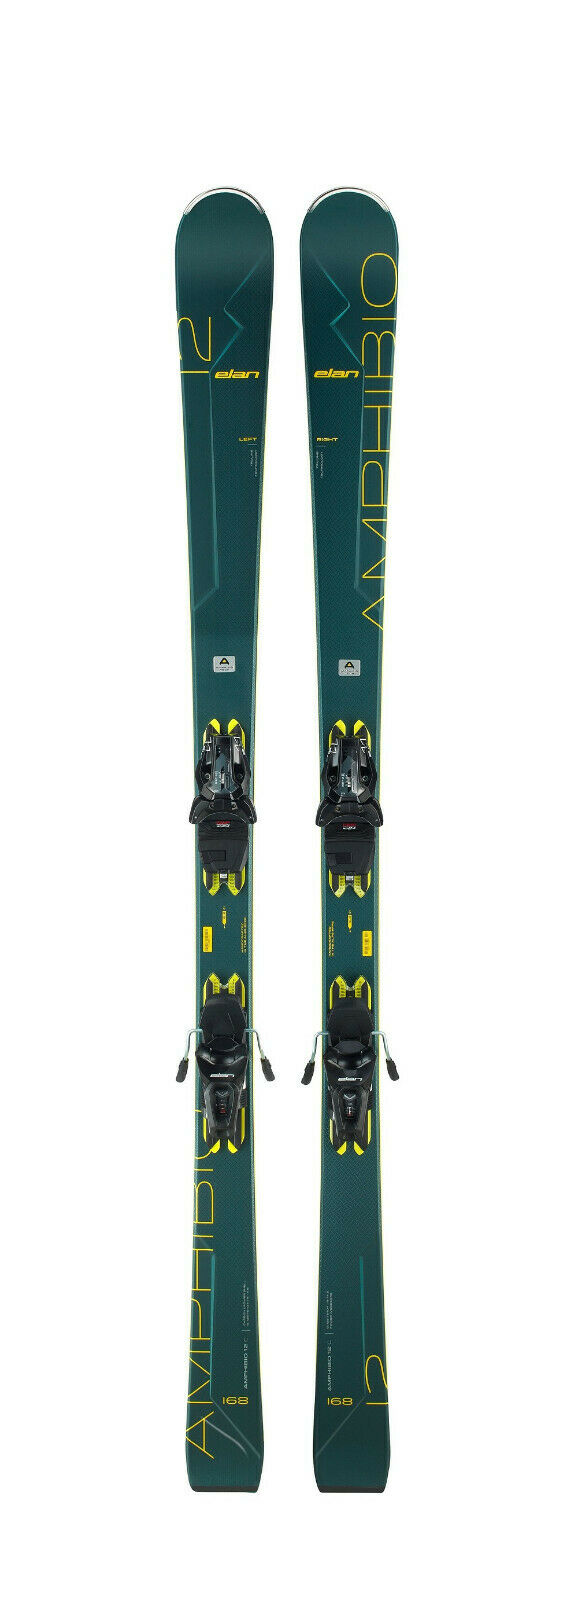 Elan Ski AMPHIBIO 12 C POWER SHIFT + EL 11.0 GW - Modell 2019 2020 -